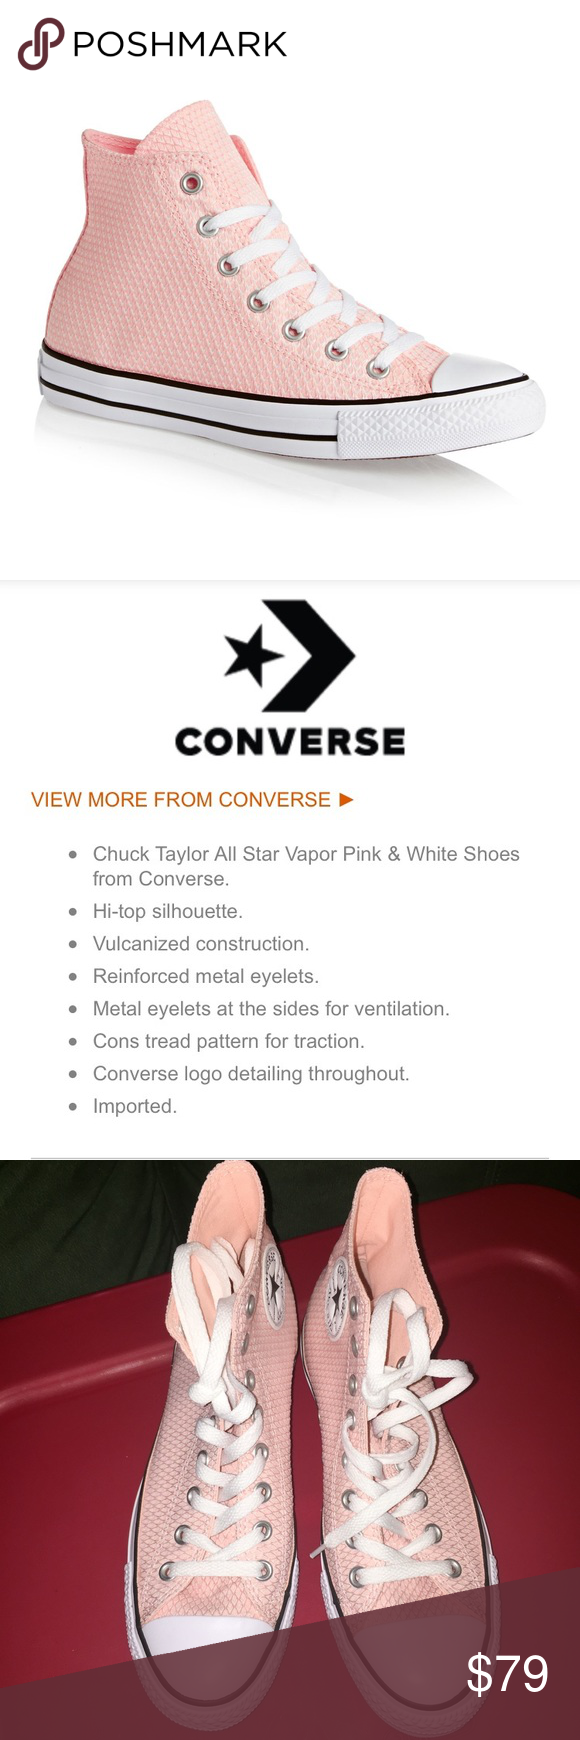 36eb06031c136a CTAS Vapor Blush Pink High Top Converse 9 Step out from your regular white